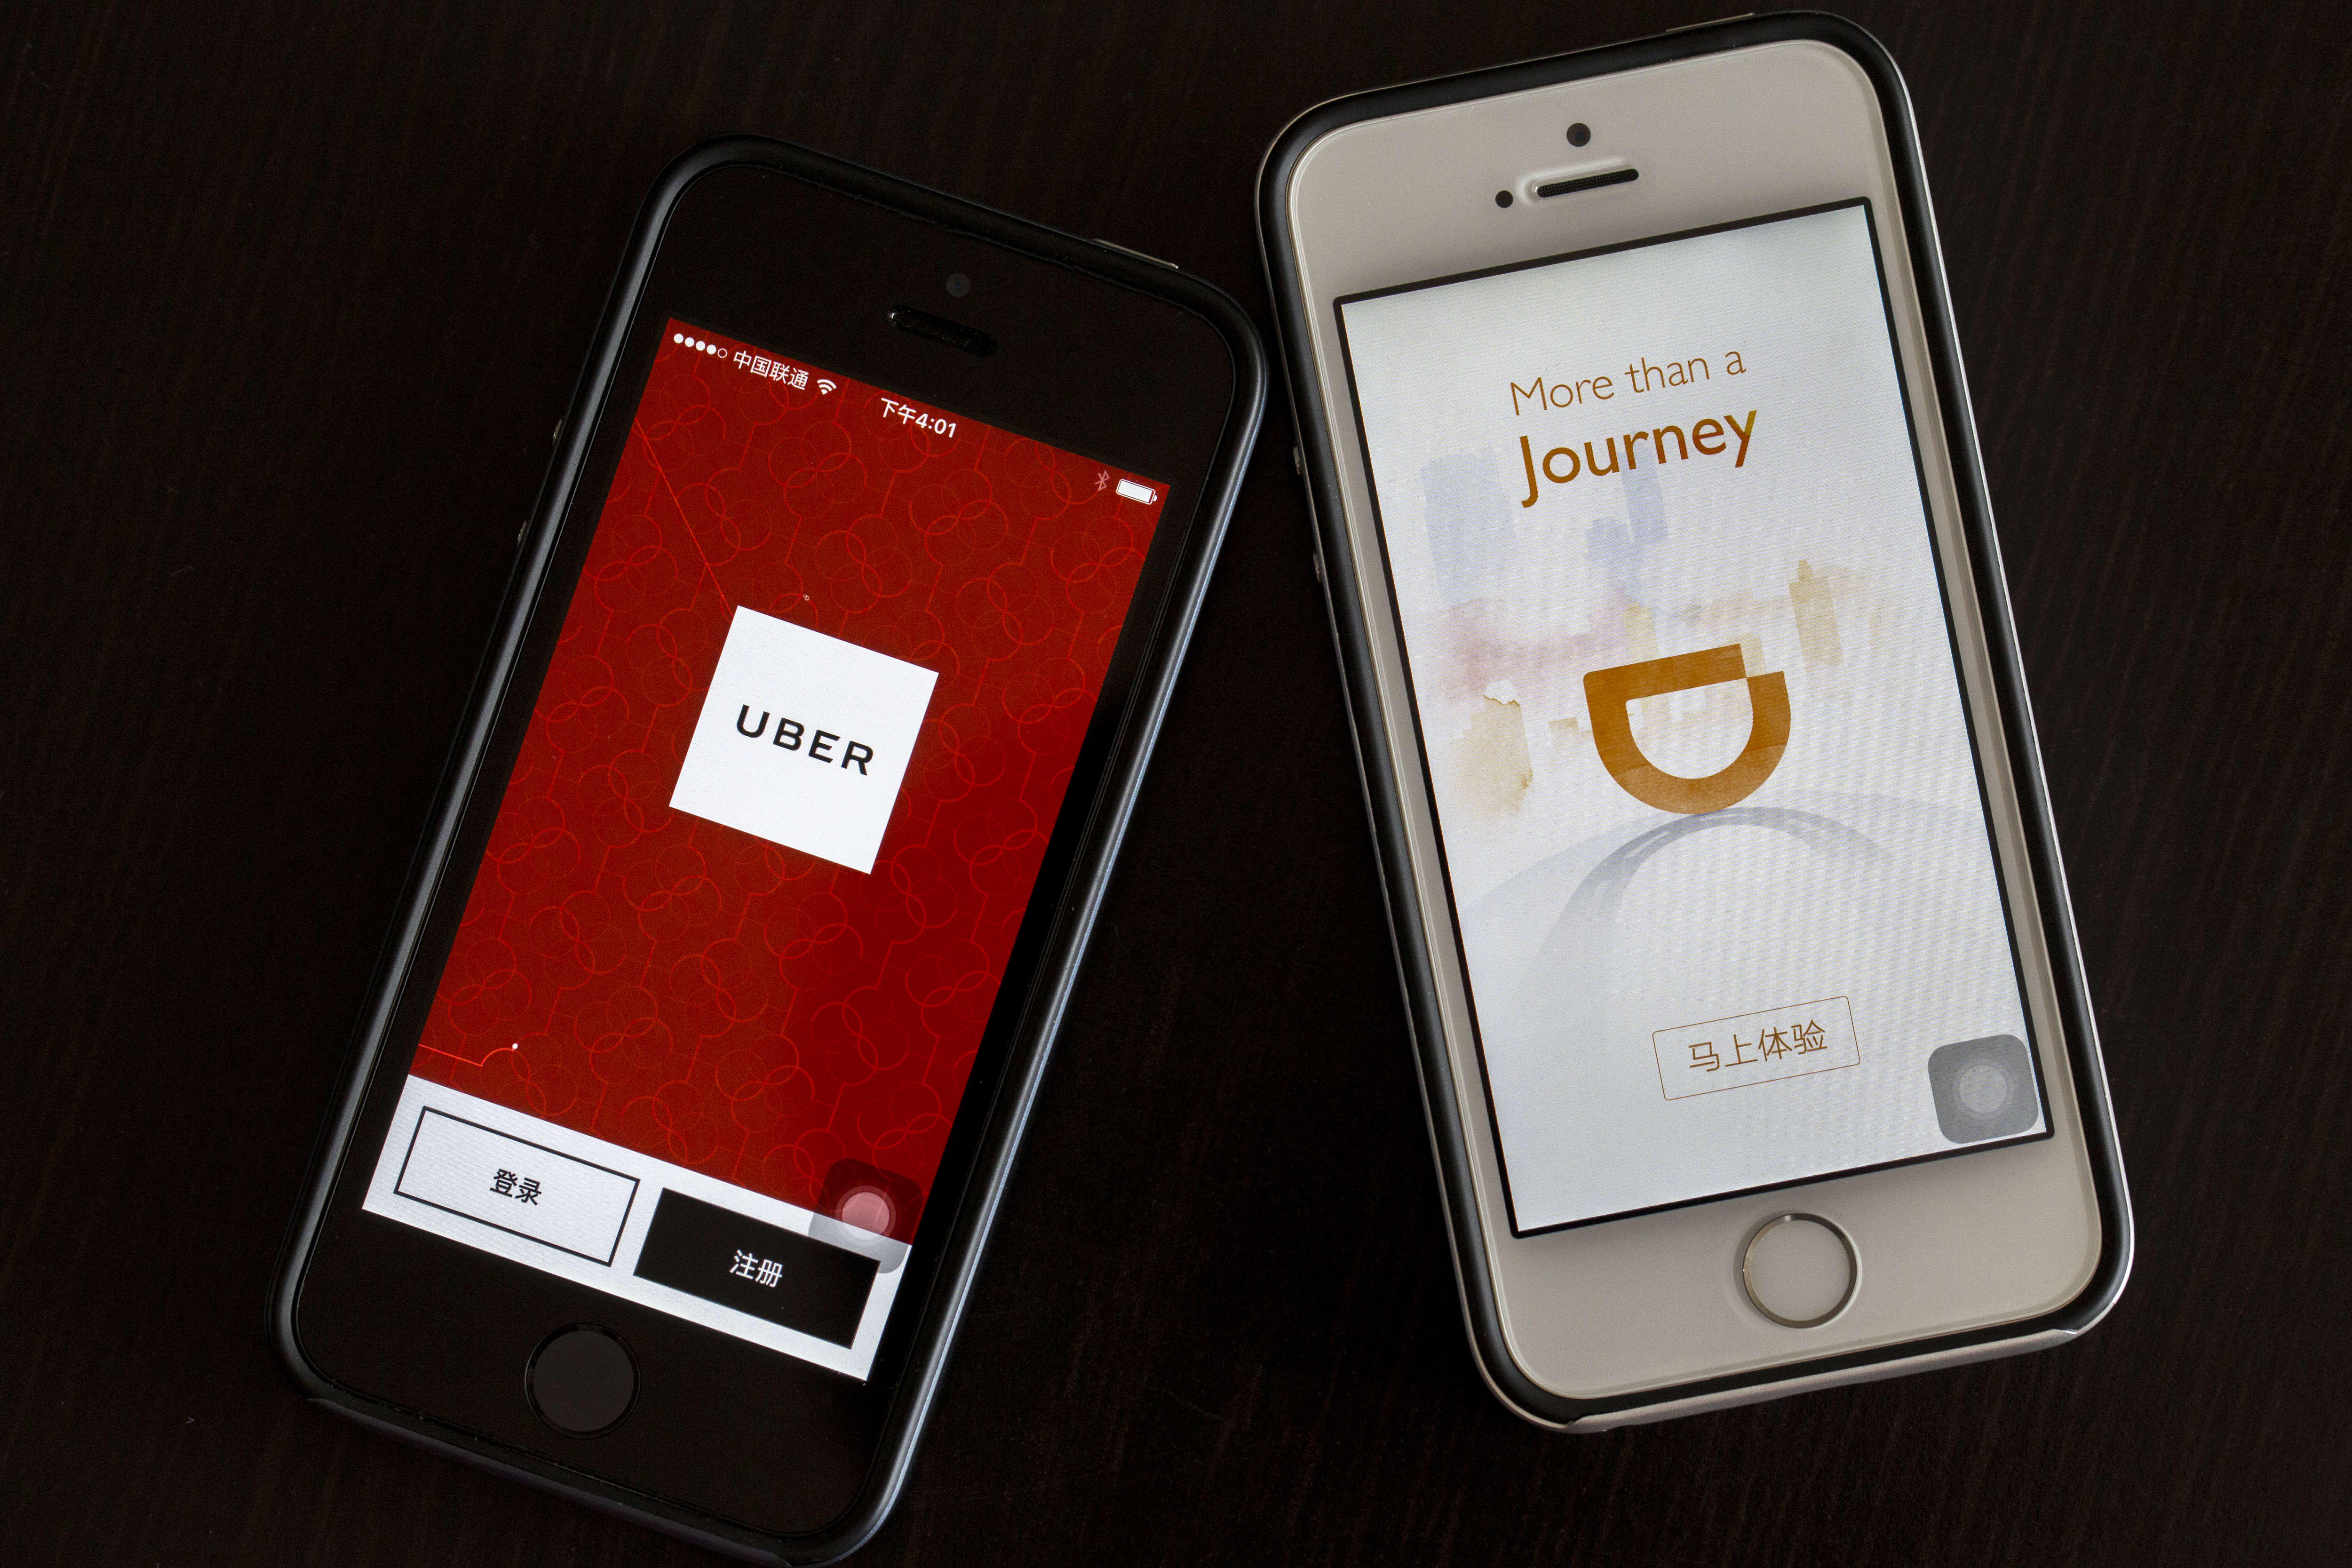 Apps of Uber and Didi Chuxing on smart phone.  Uber is